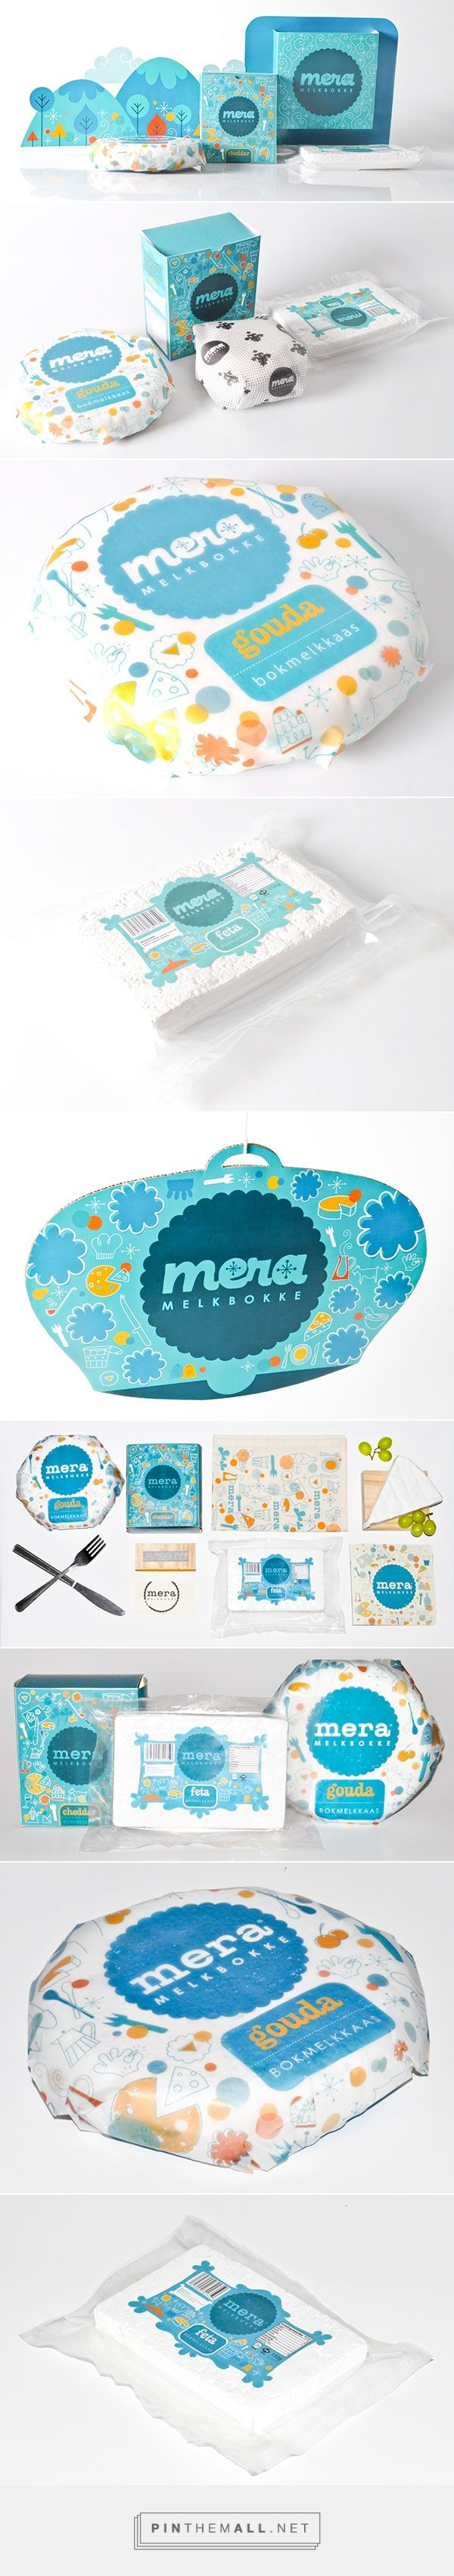 Mera® Goat Cheese Packaging on Behance by Stephan Pretorius Potchefstroom, South Africa curated by Packaging Diva PD. Retro inspired packaging and promotional design for a local goat cheese manufacturer.